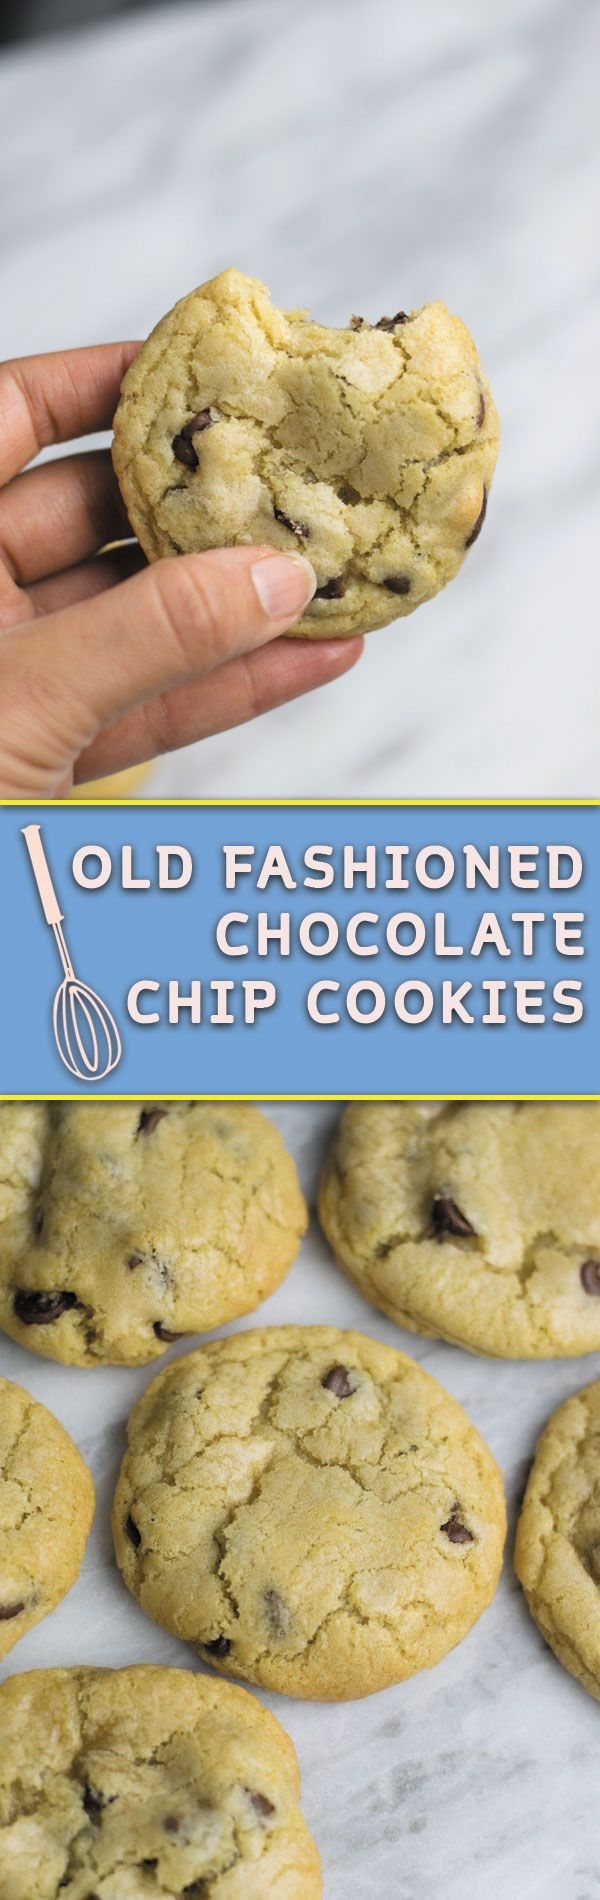 Old Fashioned Chocolate Chip Cookies - no fancy ingredient list, just few simple steps, the BEST softest thick & CHEWY cookies in town!